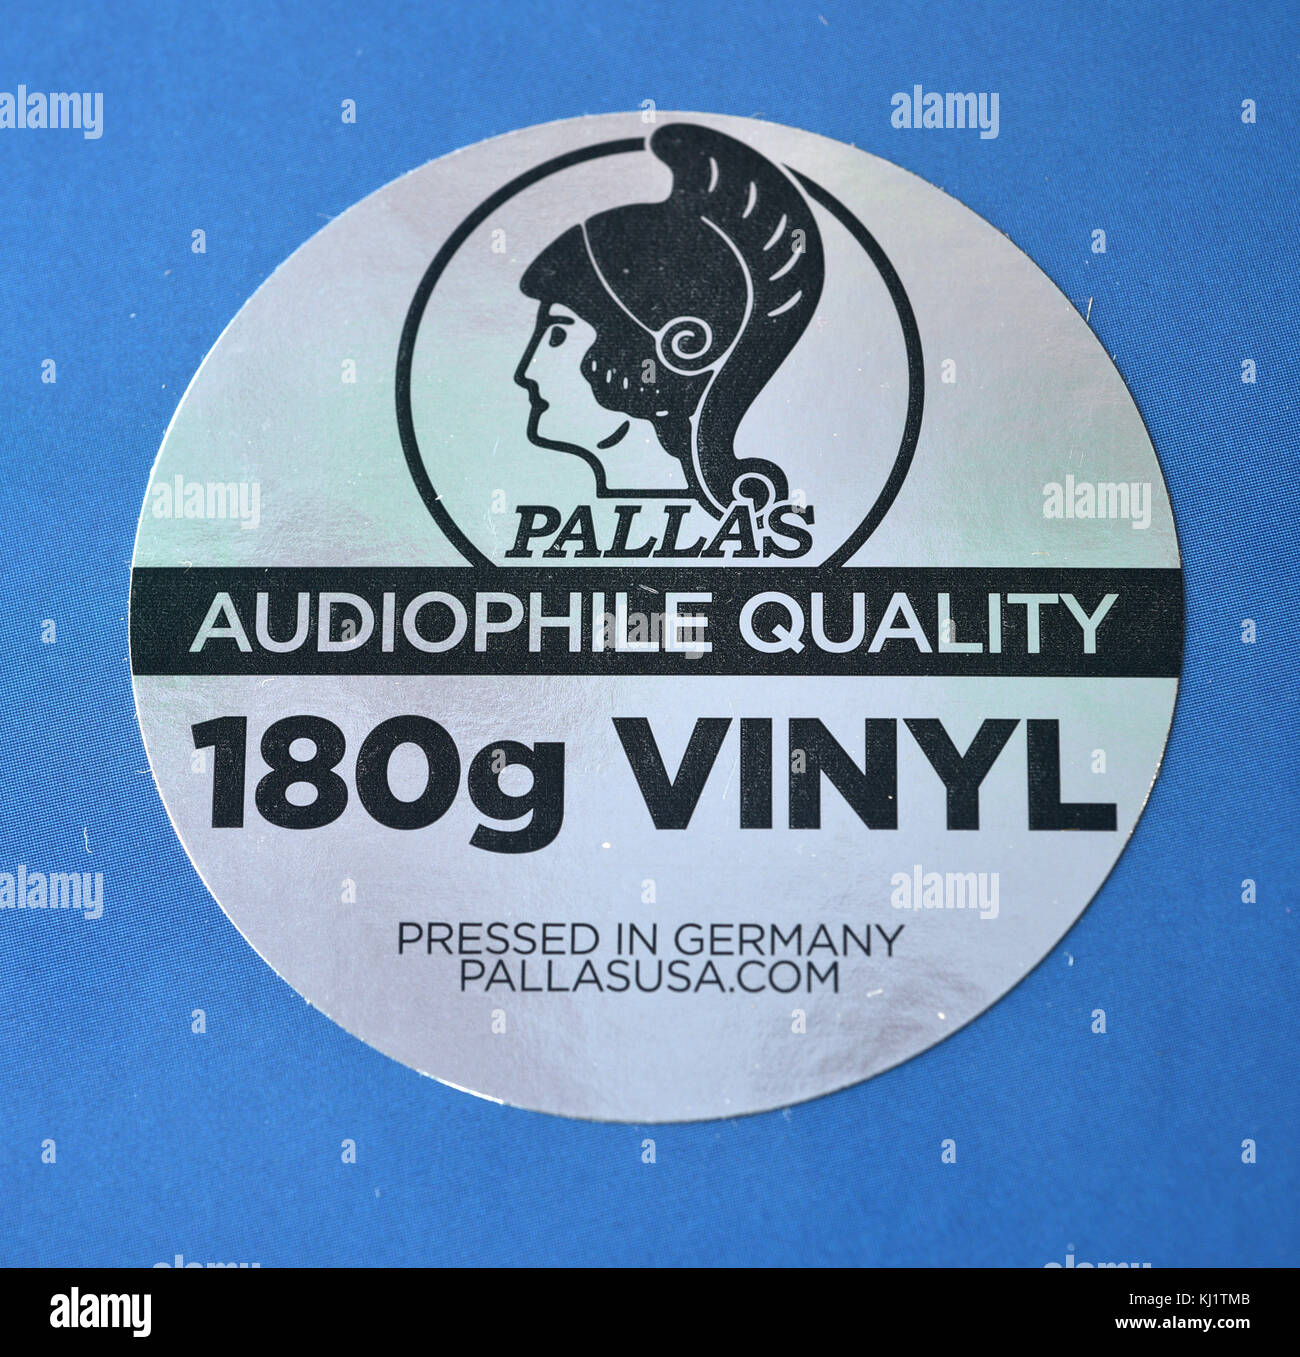 A sticker from a new vinyl album audiophile quality 180g vinyl stock image